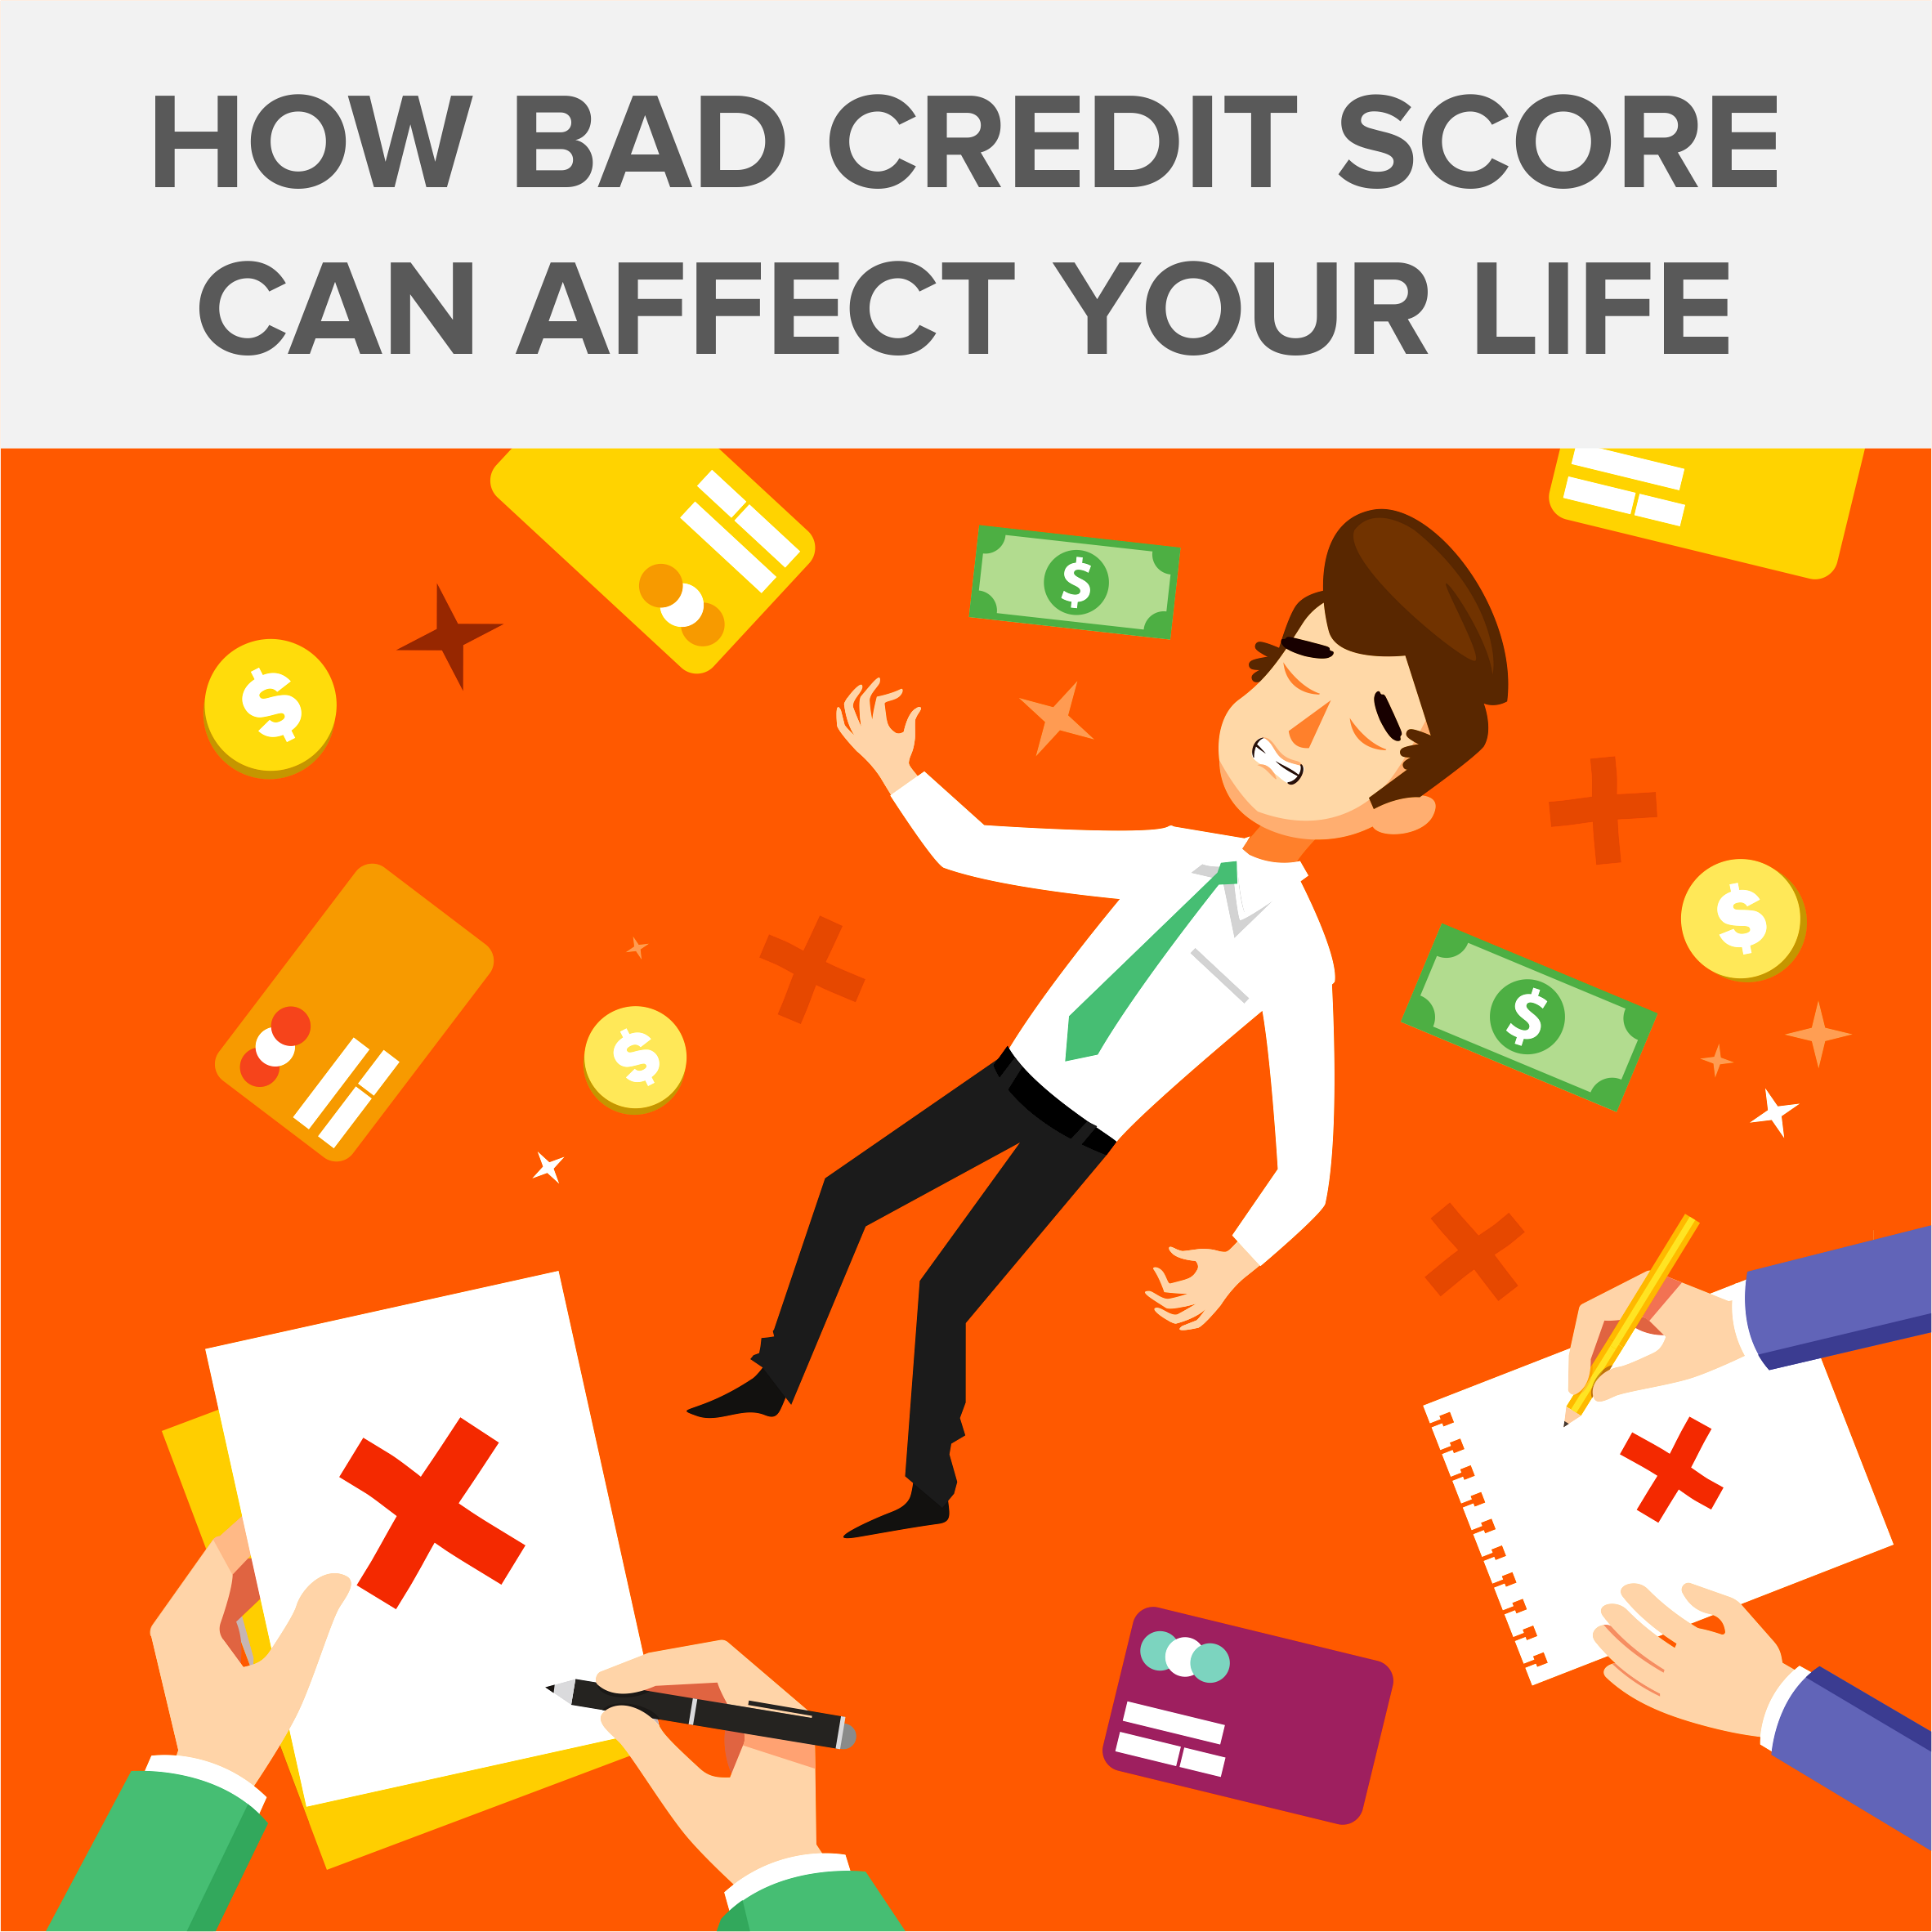 How Bad Credit Score Can Affect Your Life